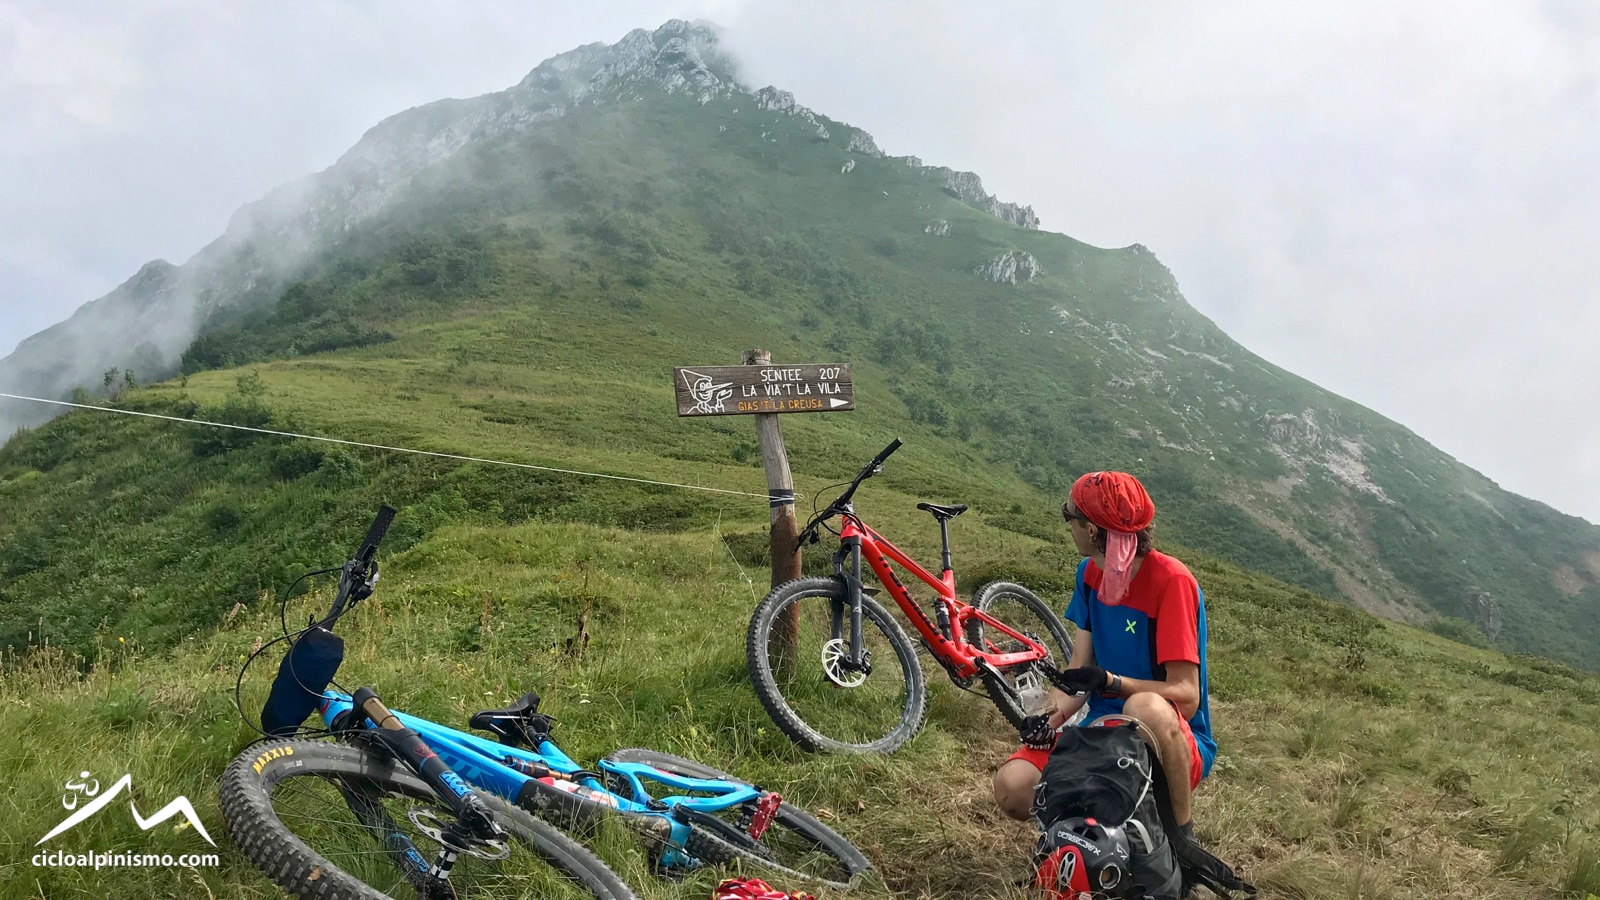 Photo of Cicloalpinismo sul Bac Baral (2130m)